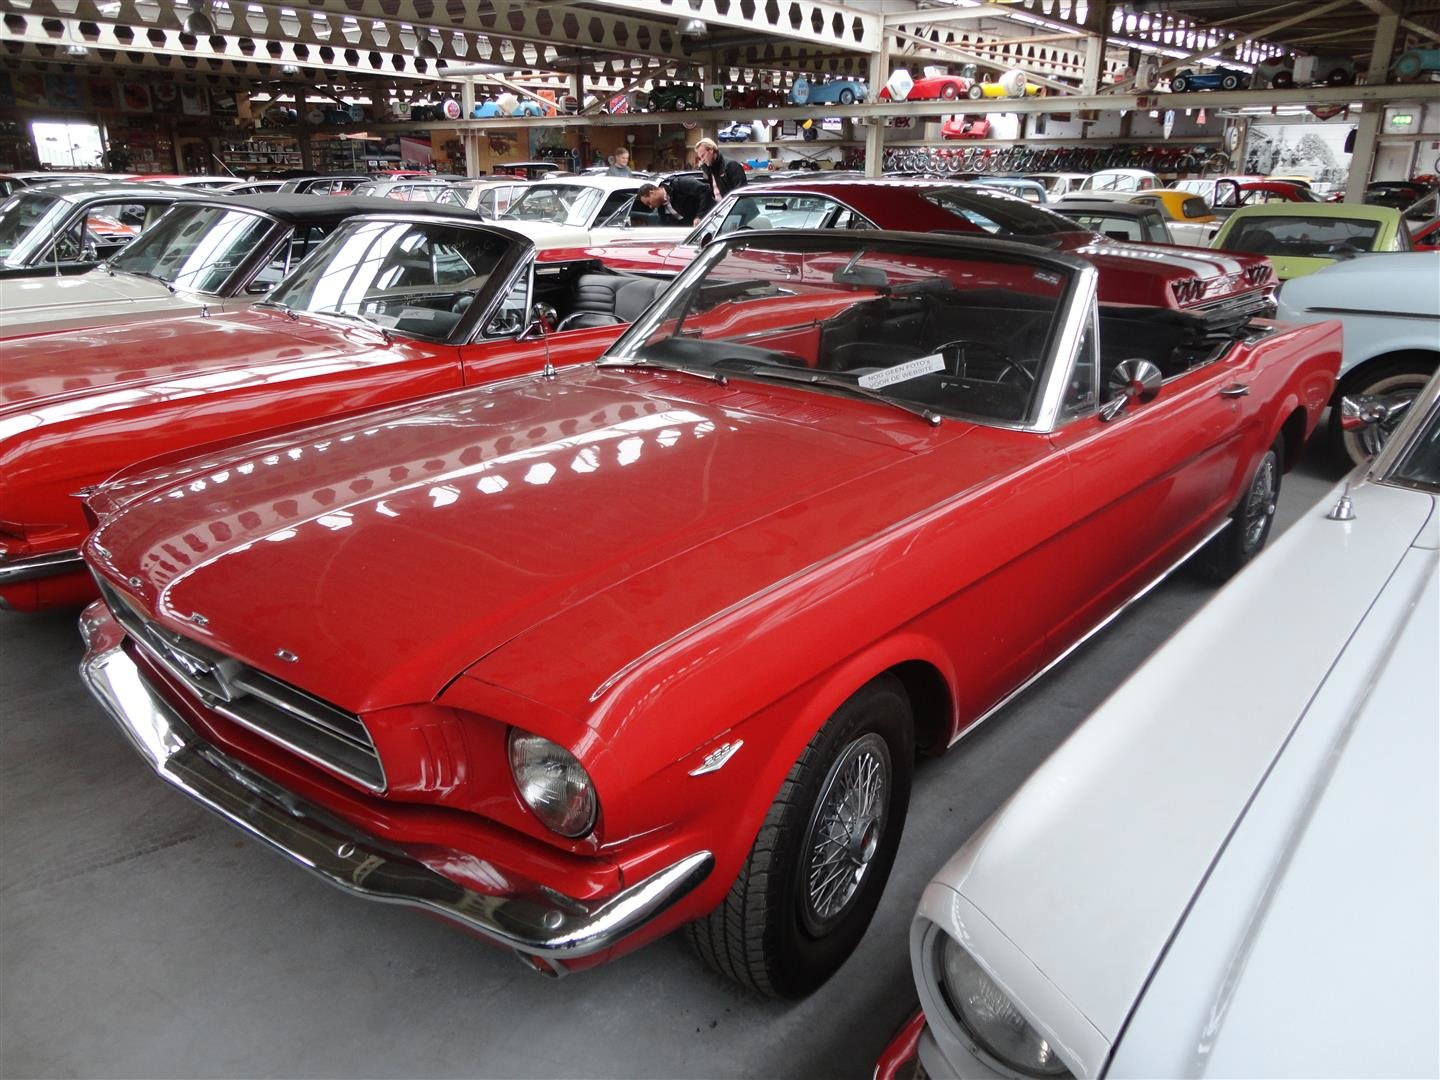 Ford Mustang Convertible 1965 For Sale (picture 1 of 6)